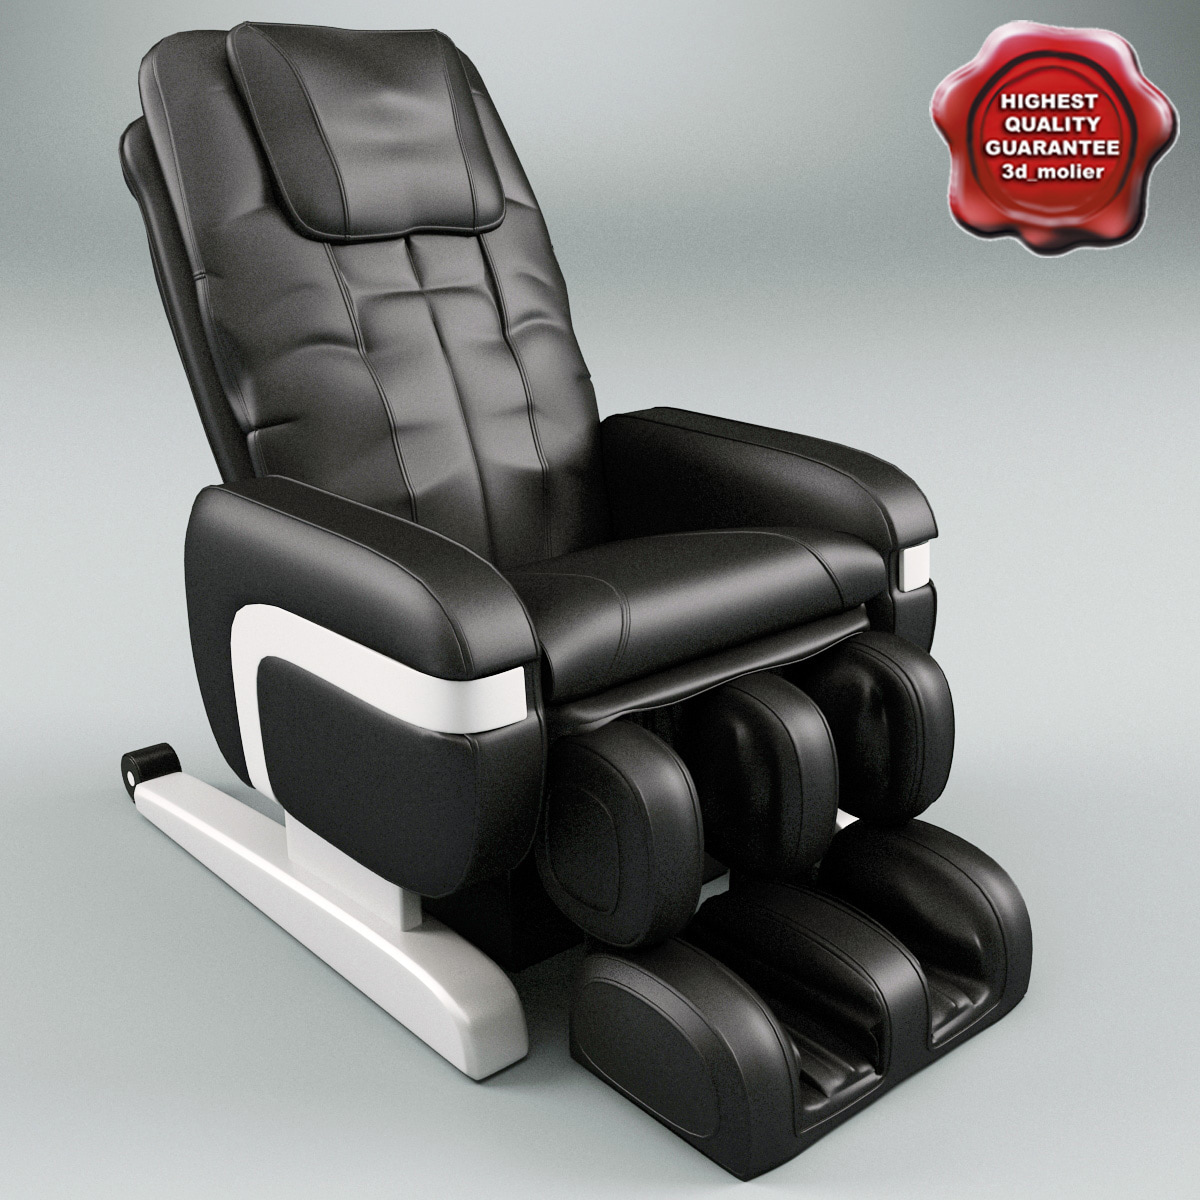 Massage_Chair_bf-136_00.jpg